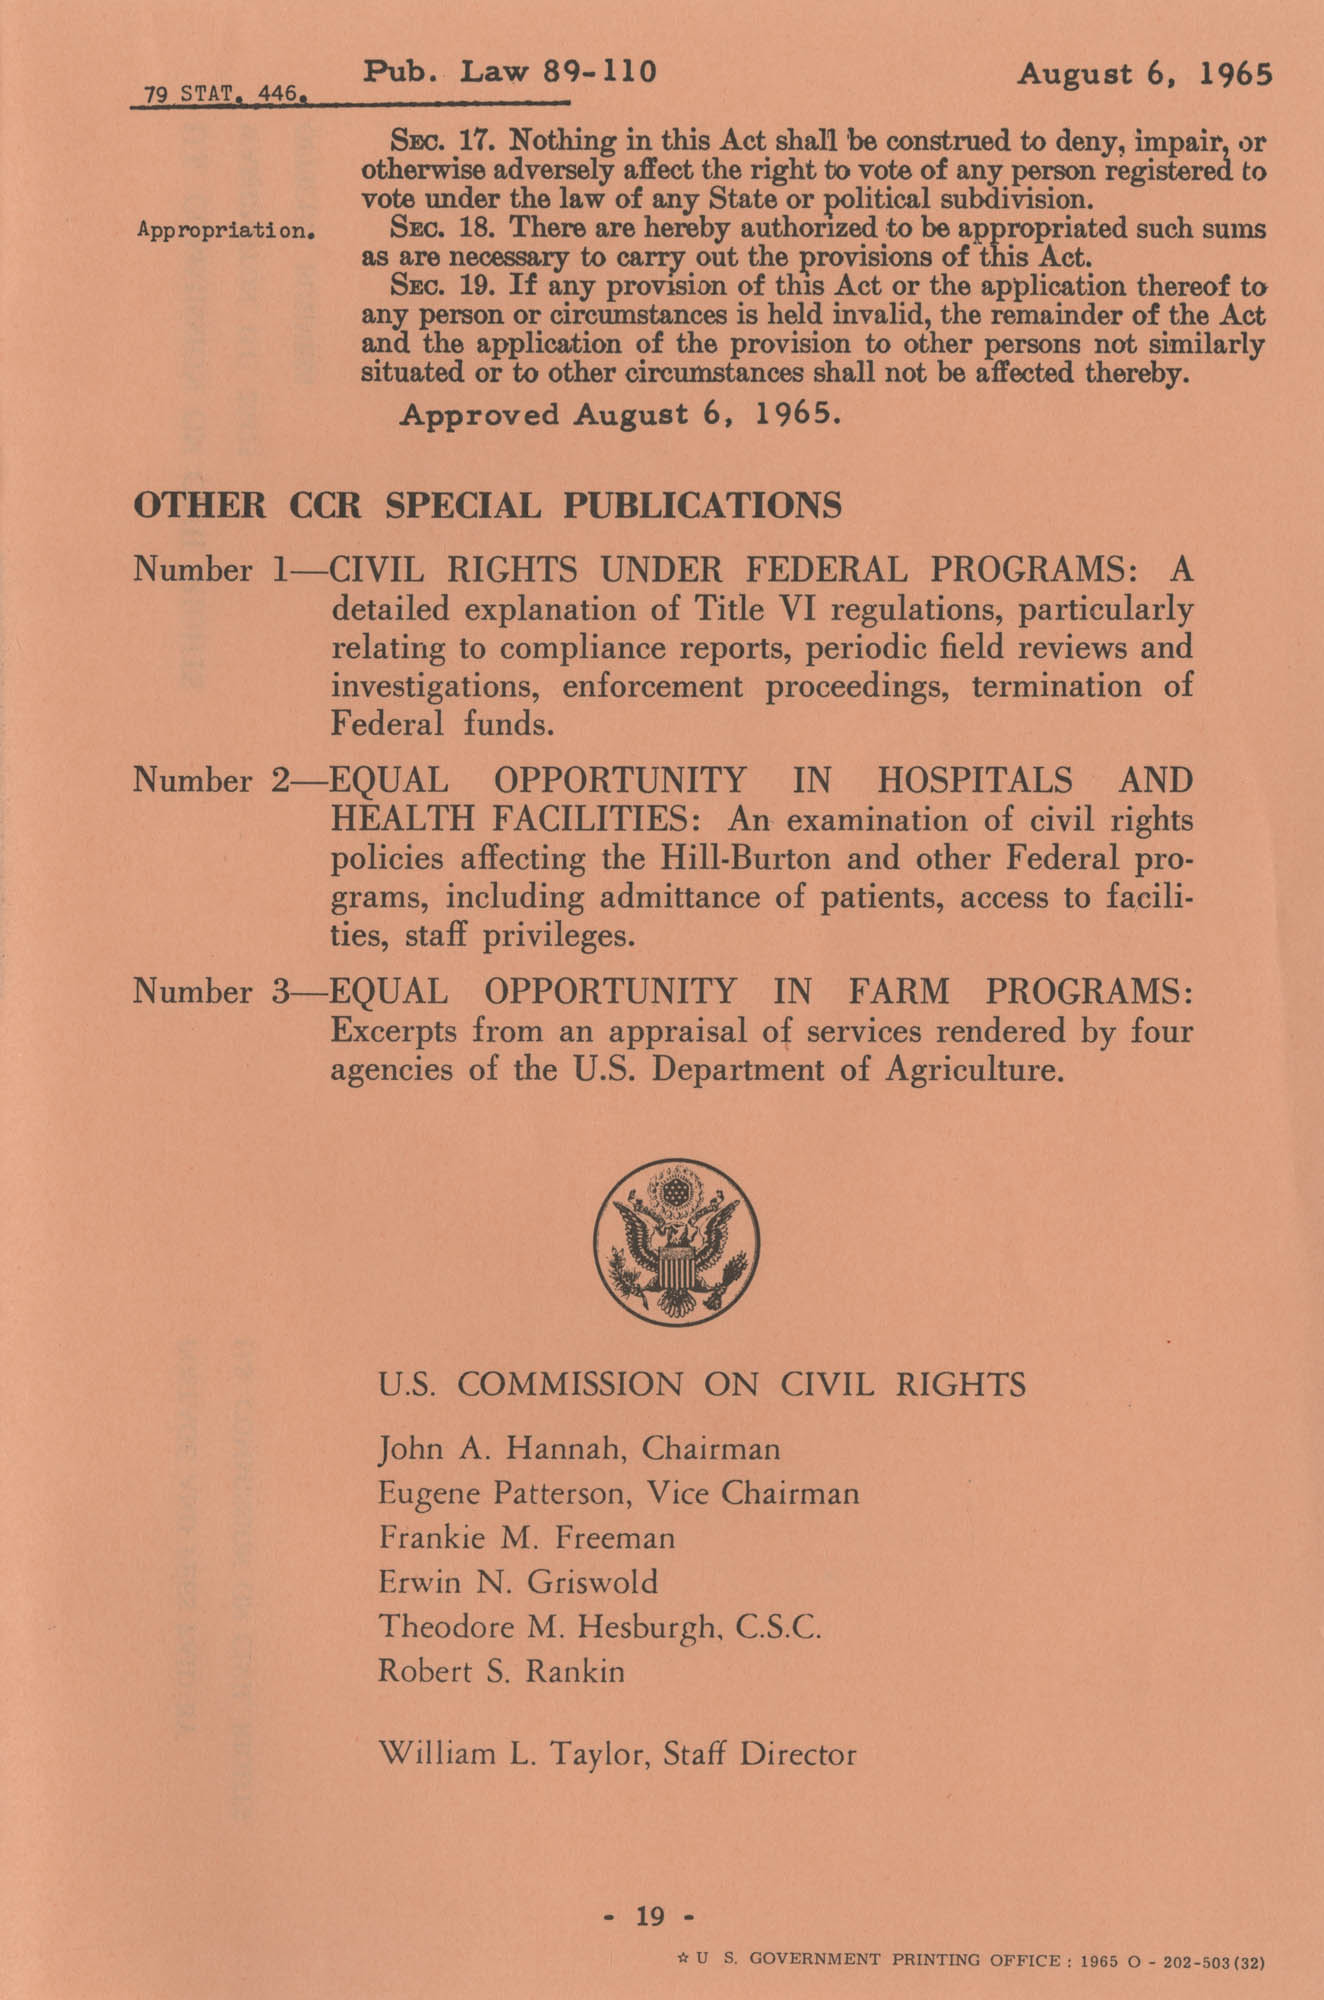 The Voting Rights Act of 1965, Page 19